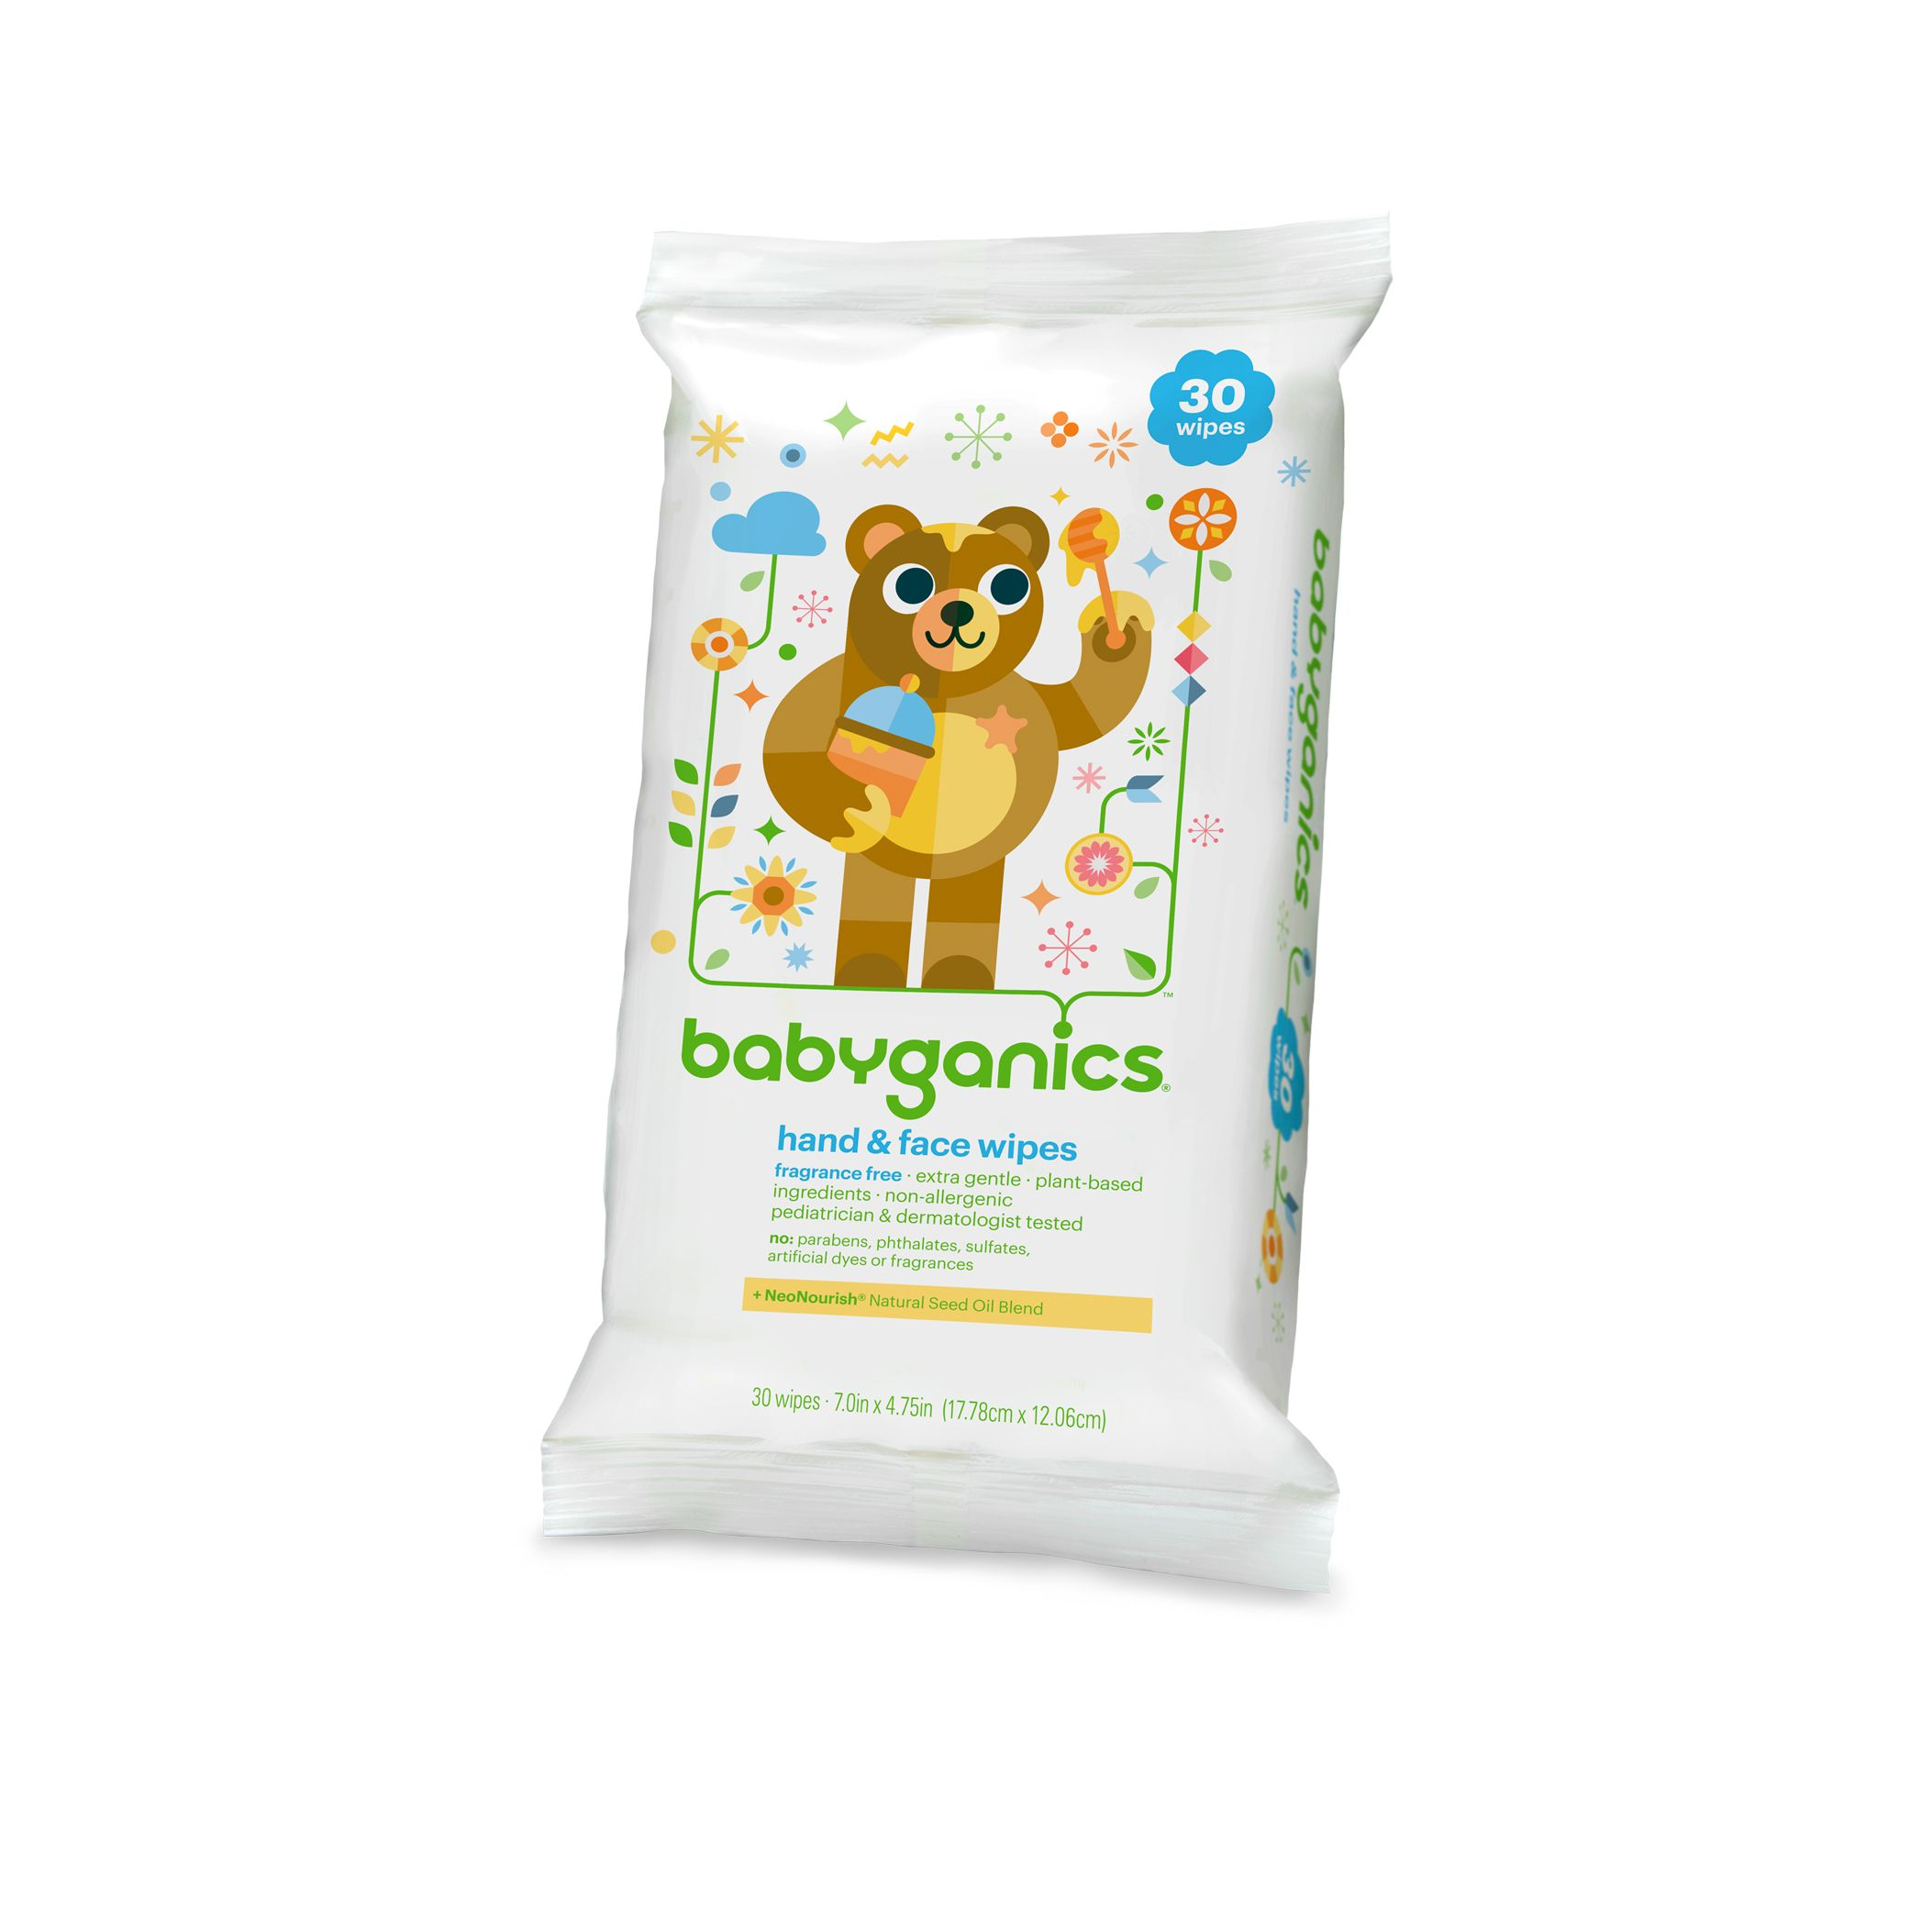 Babyganics Hand Face Wipes Babysafewipes Picked These Up